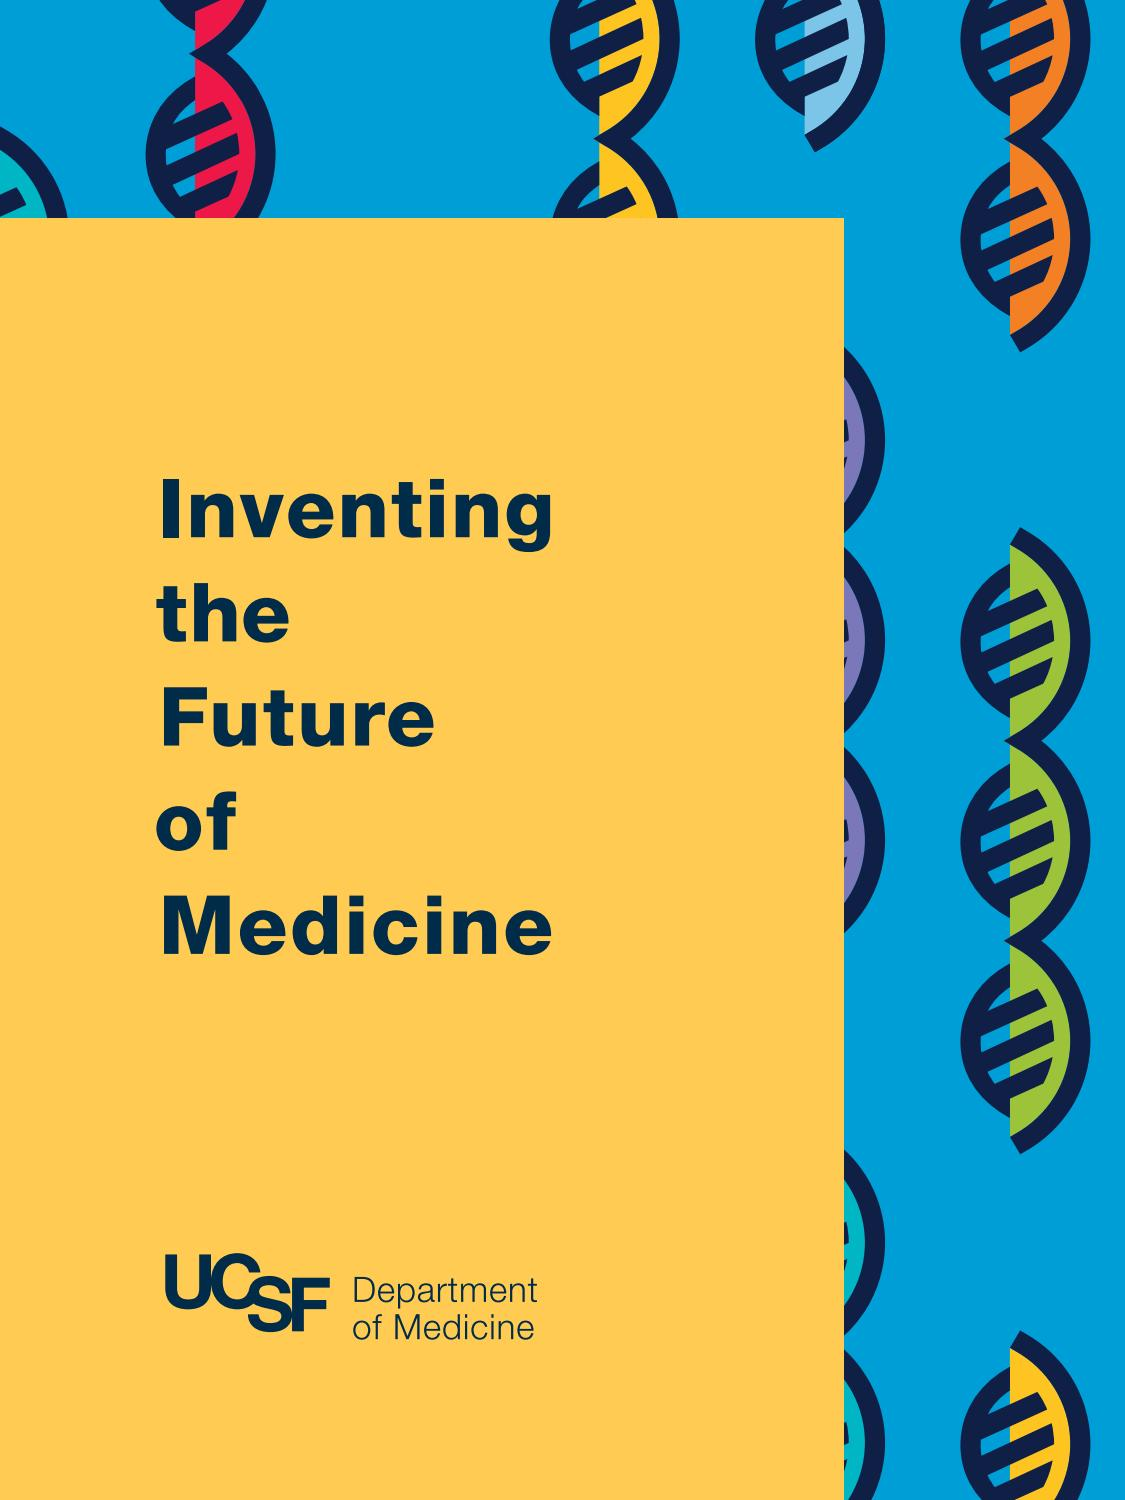 UCSF Department of Medicine: 2017 Annual Report by UCSF